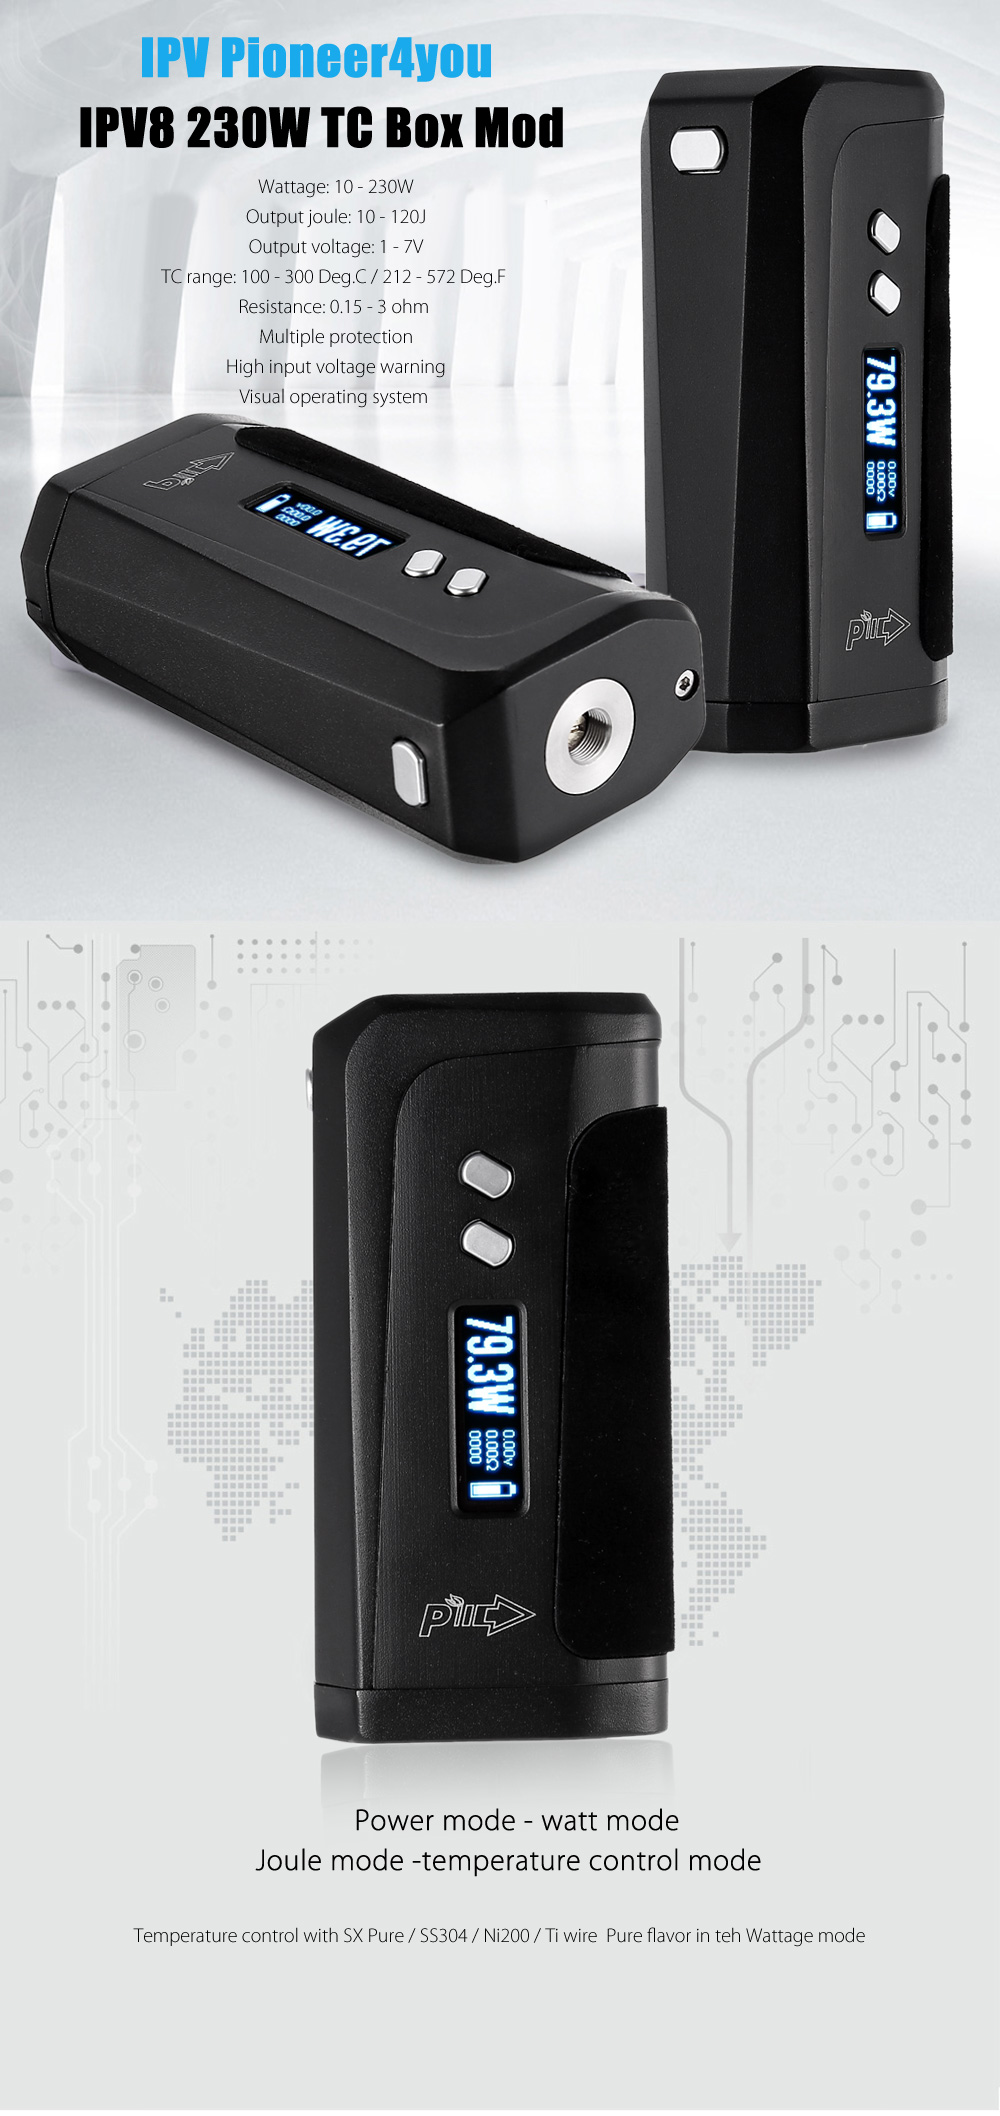 Original Ipv Pioneer4you Ipv8 230w Tc Box Mod 6063 Free Shipping Sx 230 Wiring Diagram Package Contents 1 X Micro Usb Cable English User Manual